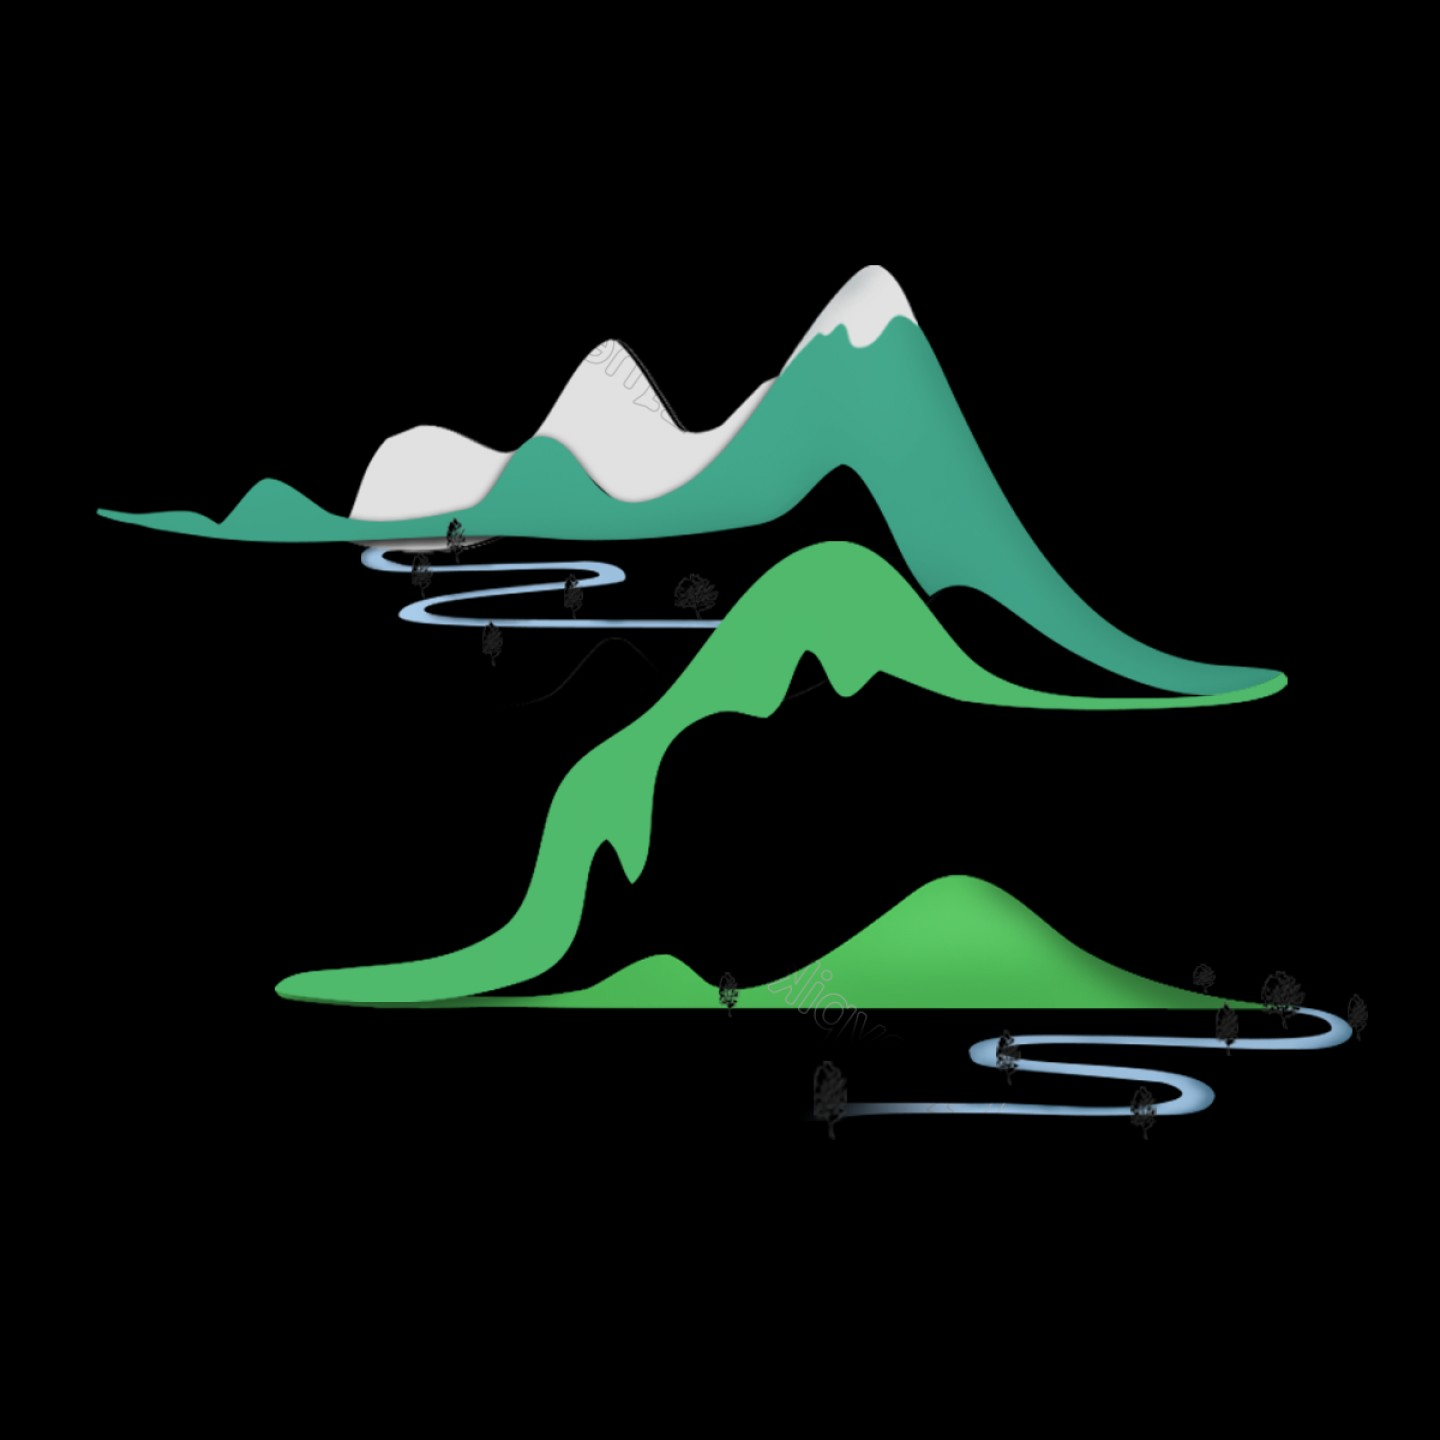 Vector Group Of Hands Overlapped: Landscape Pastoral Scenery Origami Overlapping Mountain Peaks Creekbub